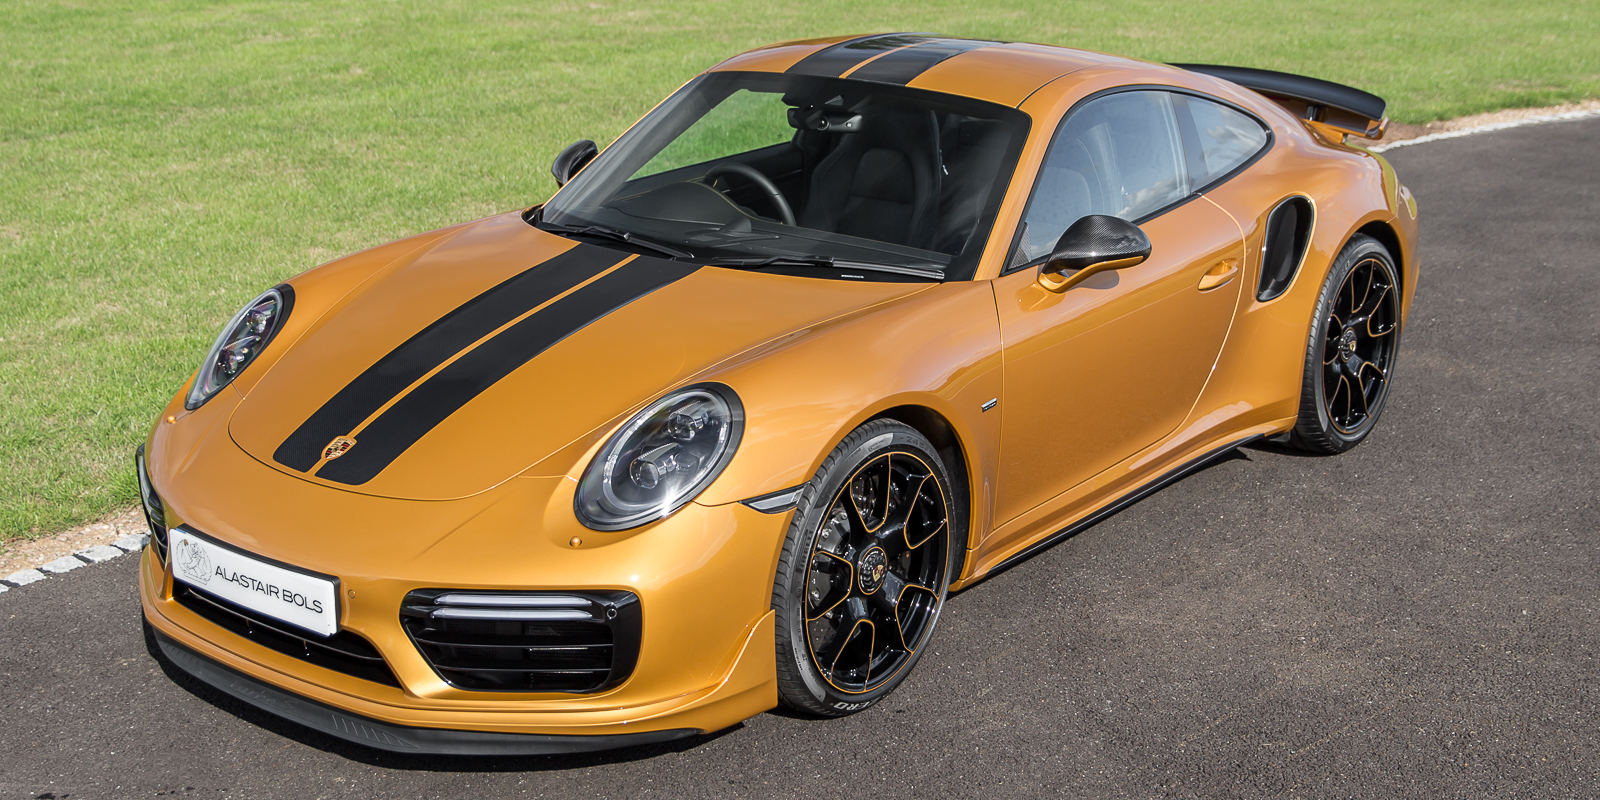 Porsche 991.2 Turbo S Exclusive Edition